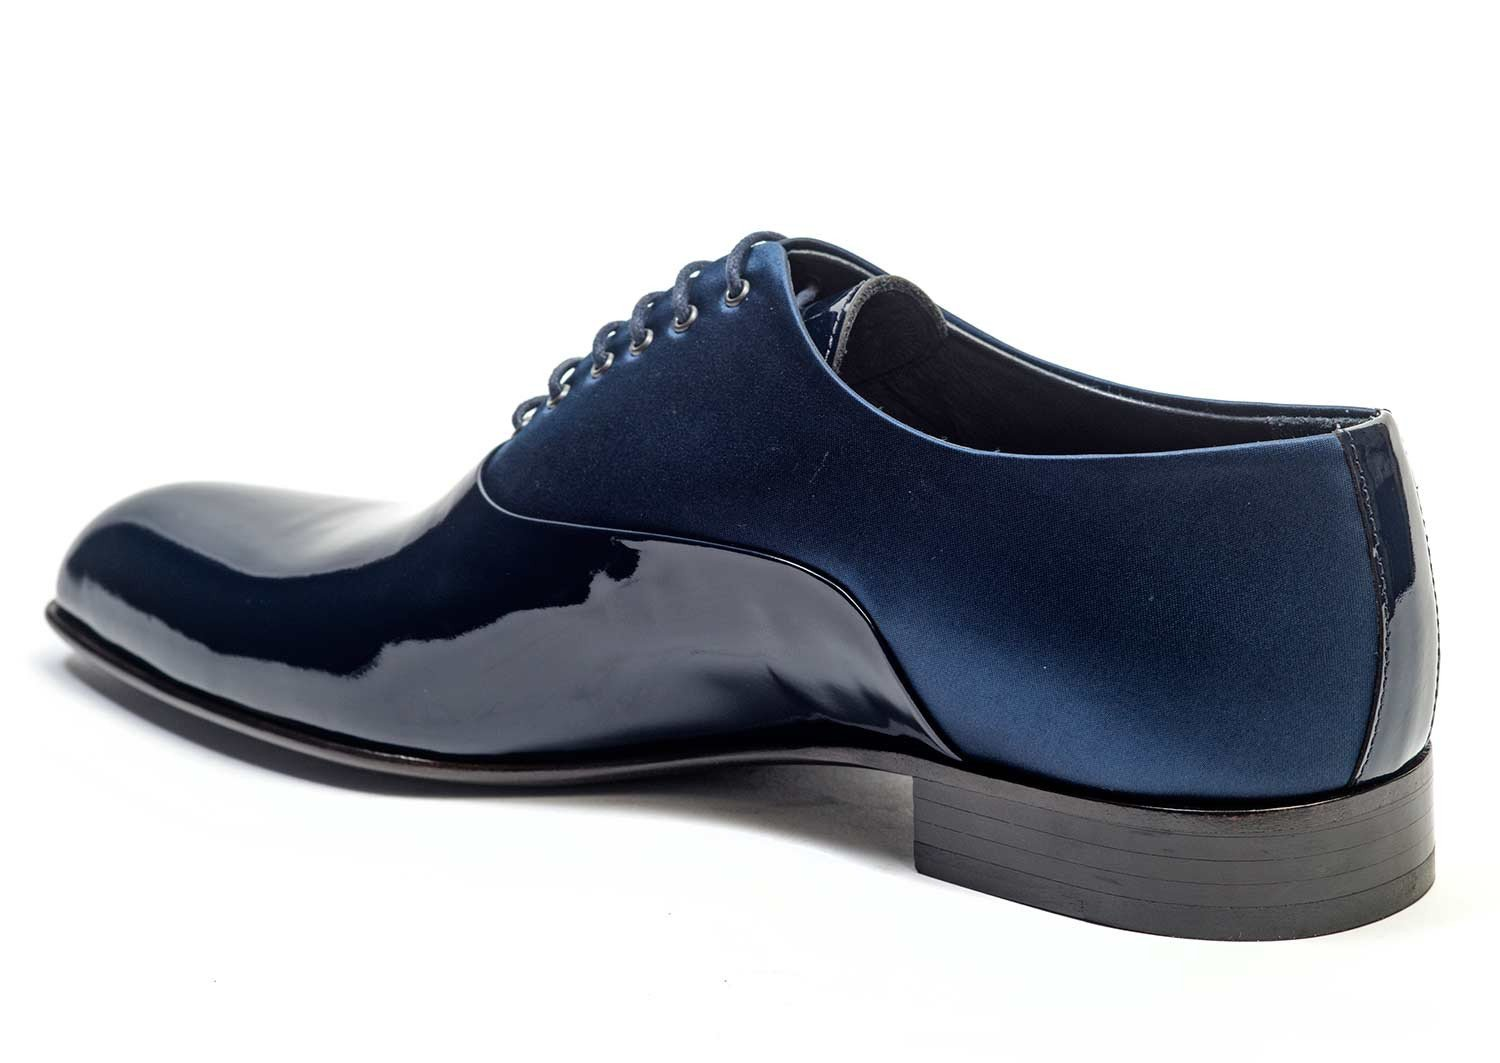 Navy Satin and Patent Leather Dress Shoes for Men - other side 51105-NV - Jared Lang